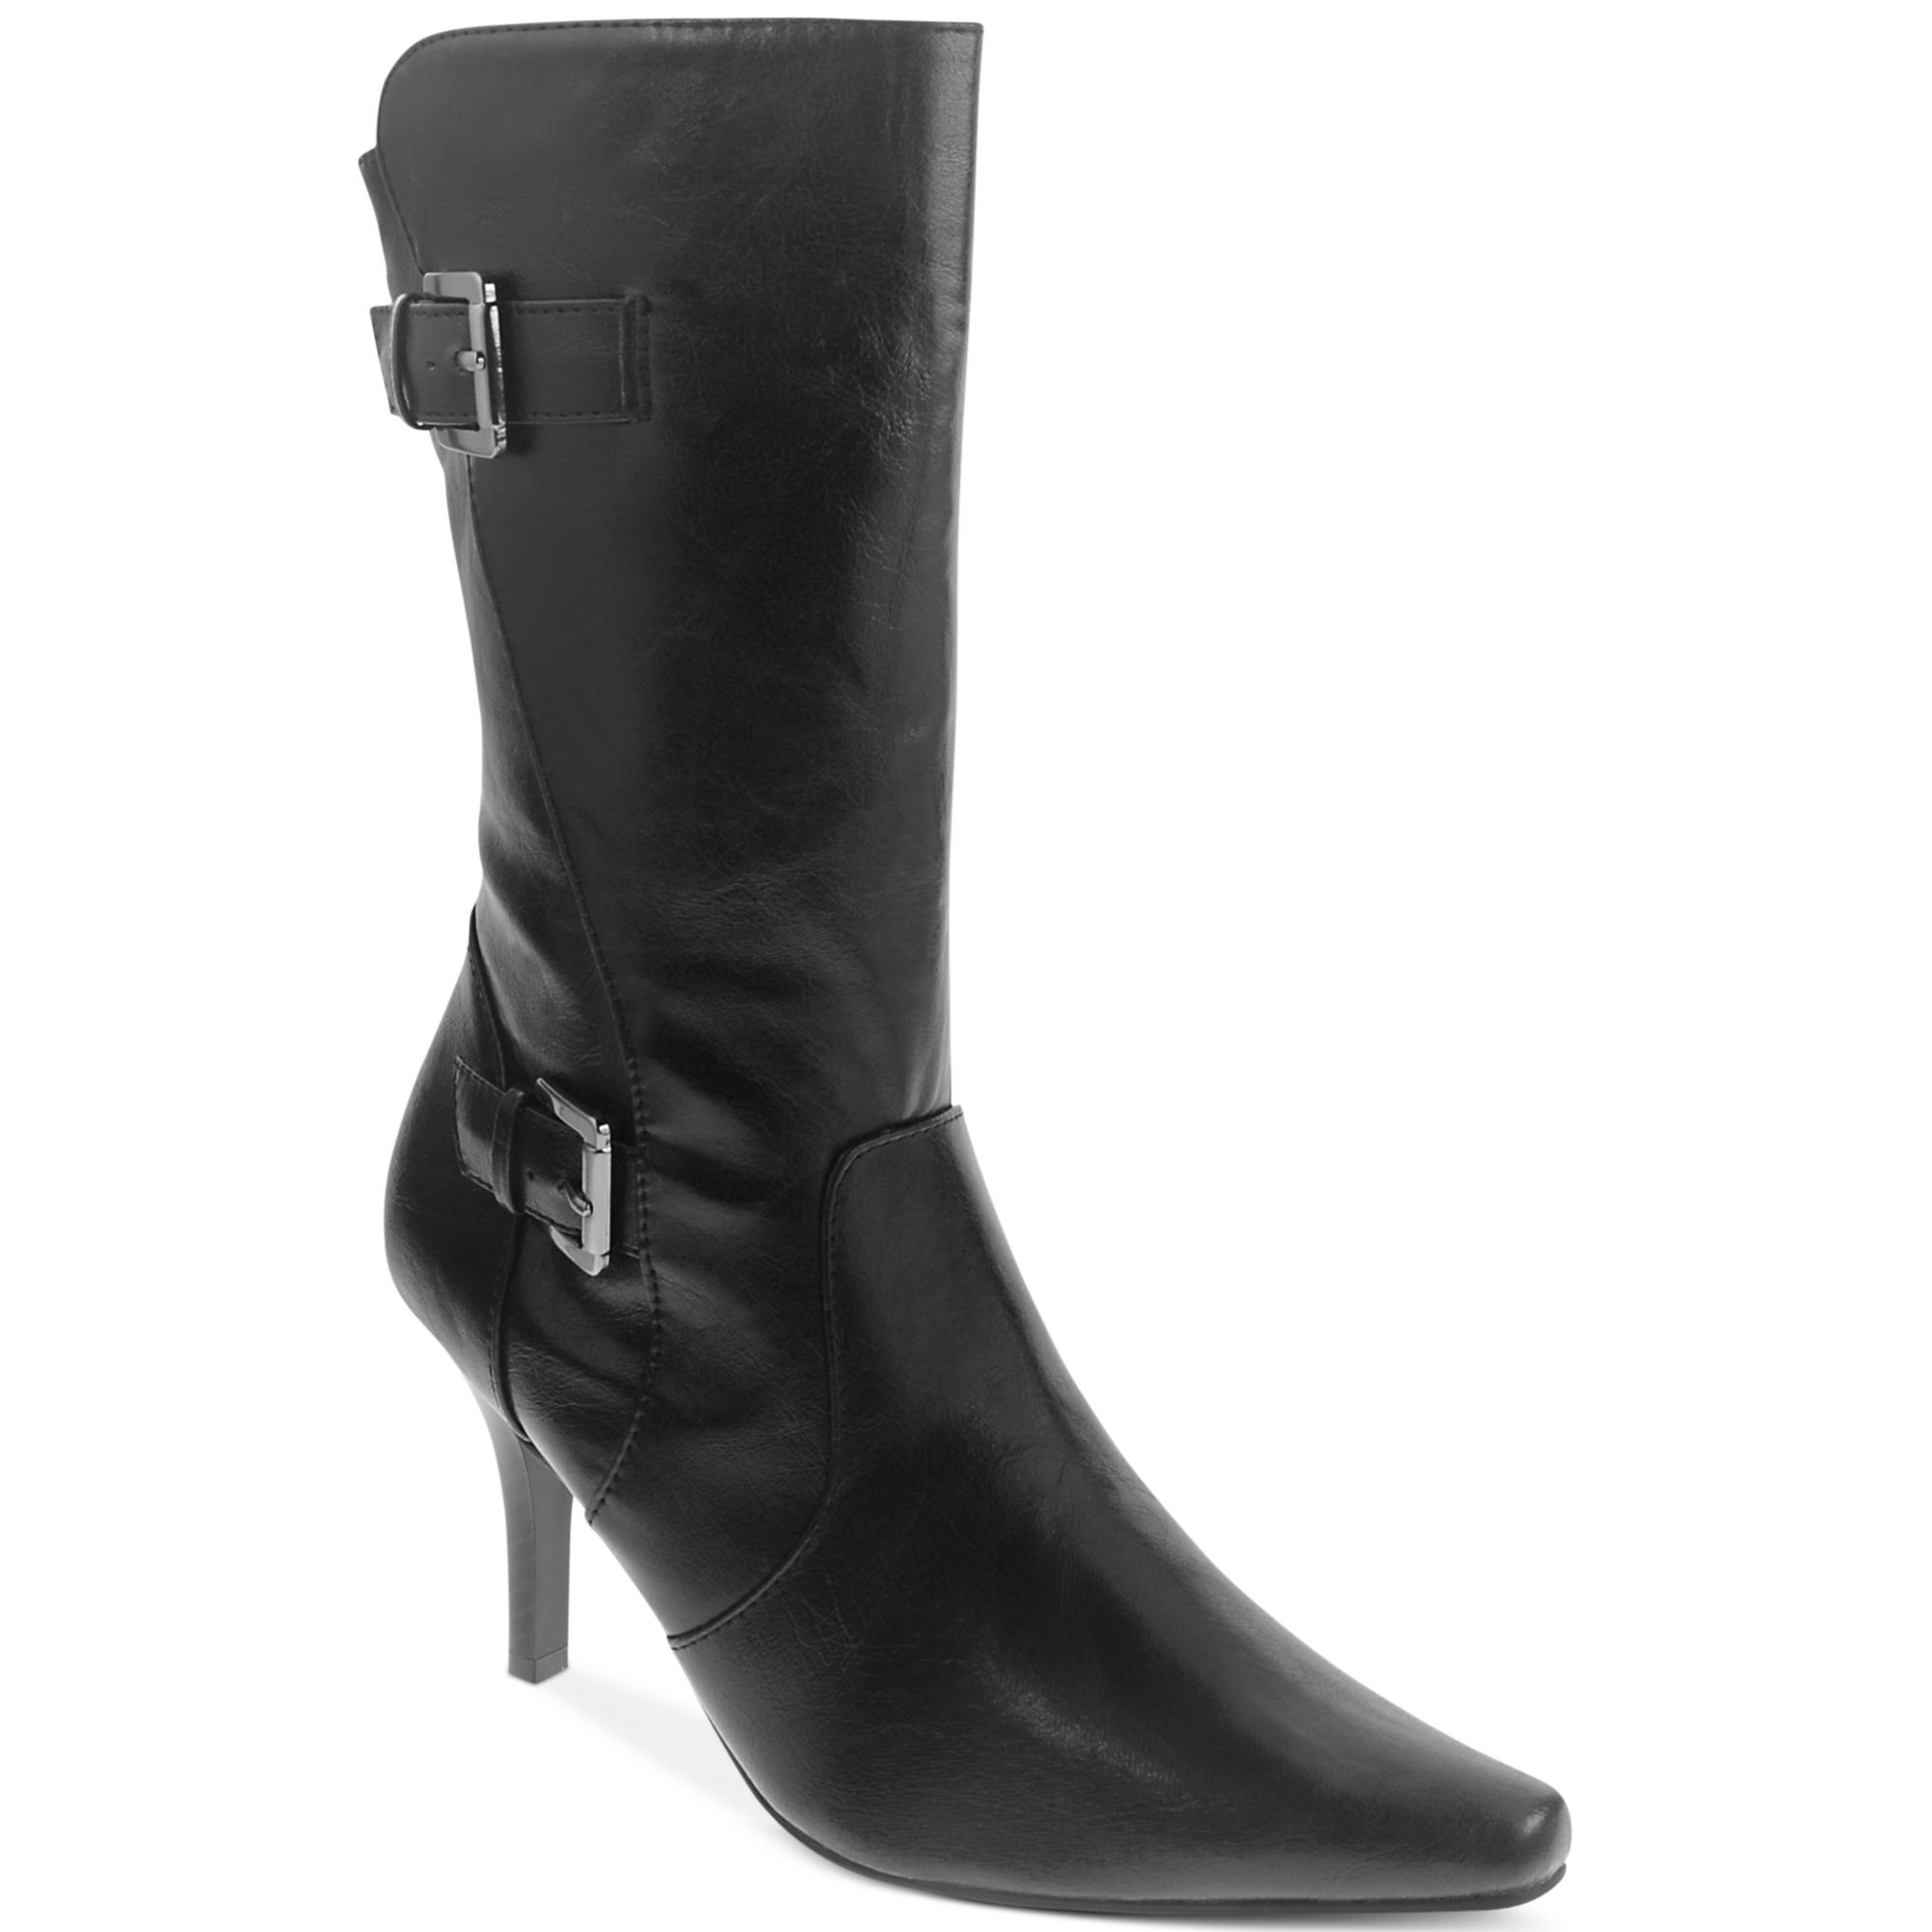 Chinese Laundry Womens Simile Tall Shaft Dress Boots In